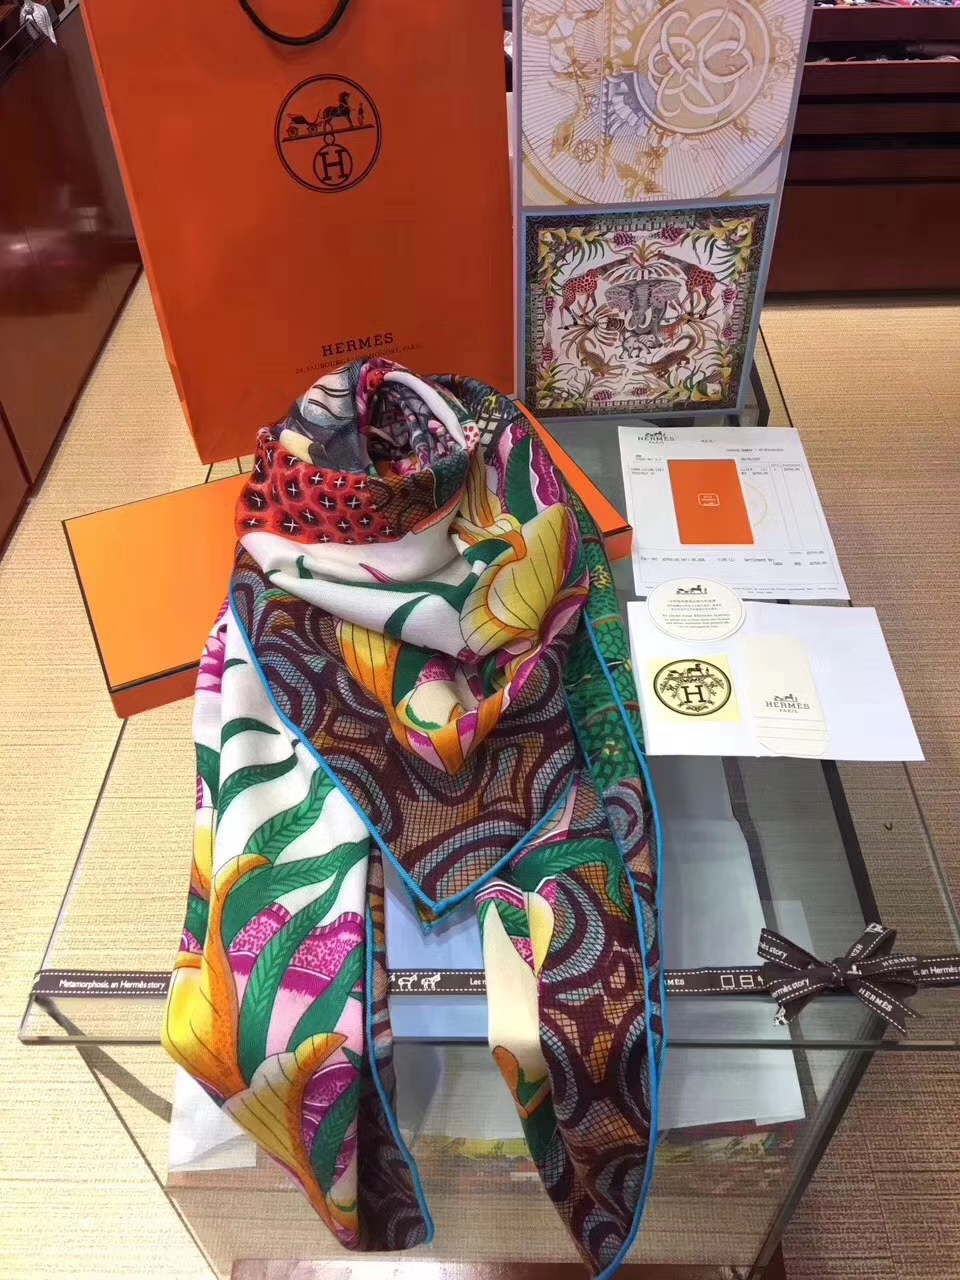 Noble Hermes Printed Cashmere Women's Scarf Cape in White140*140cm